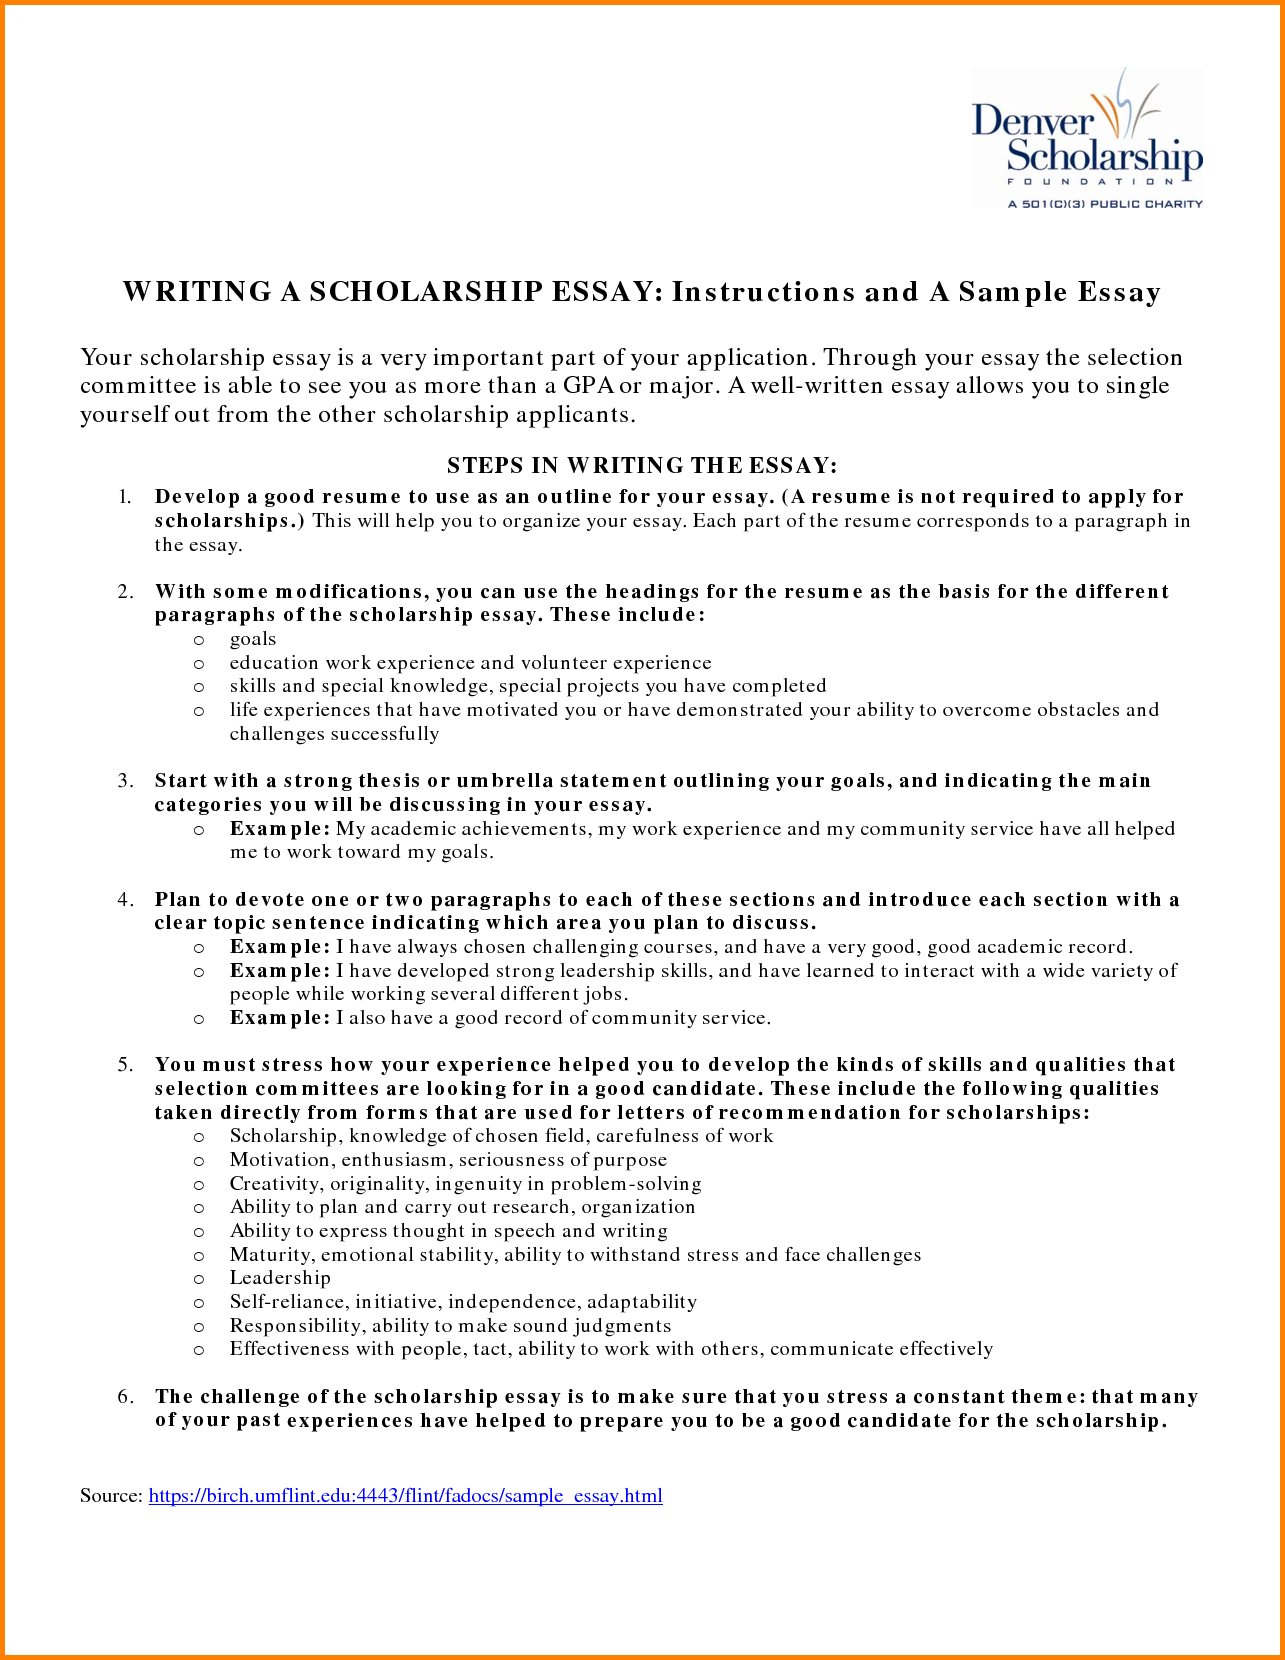 009 Essay Example Fair Resume Examples For Scholarships In Scholarship Sample Of Awful Essays Masters On Financial Need Full